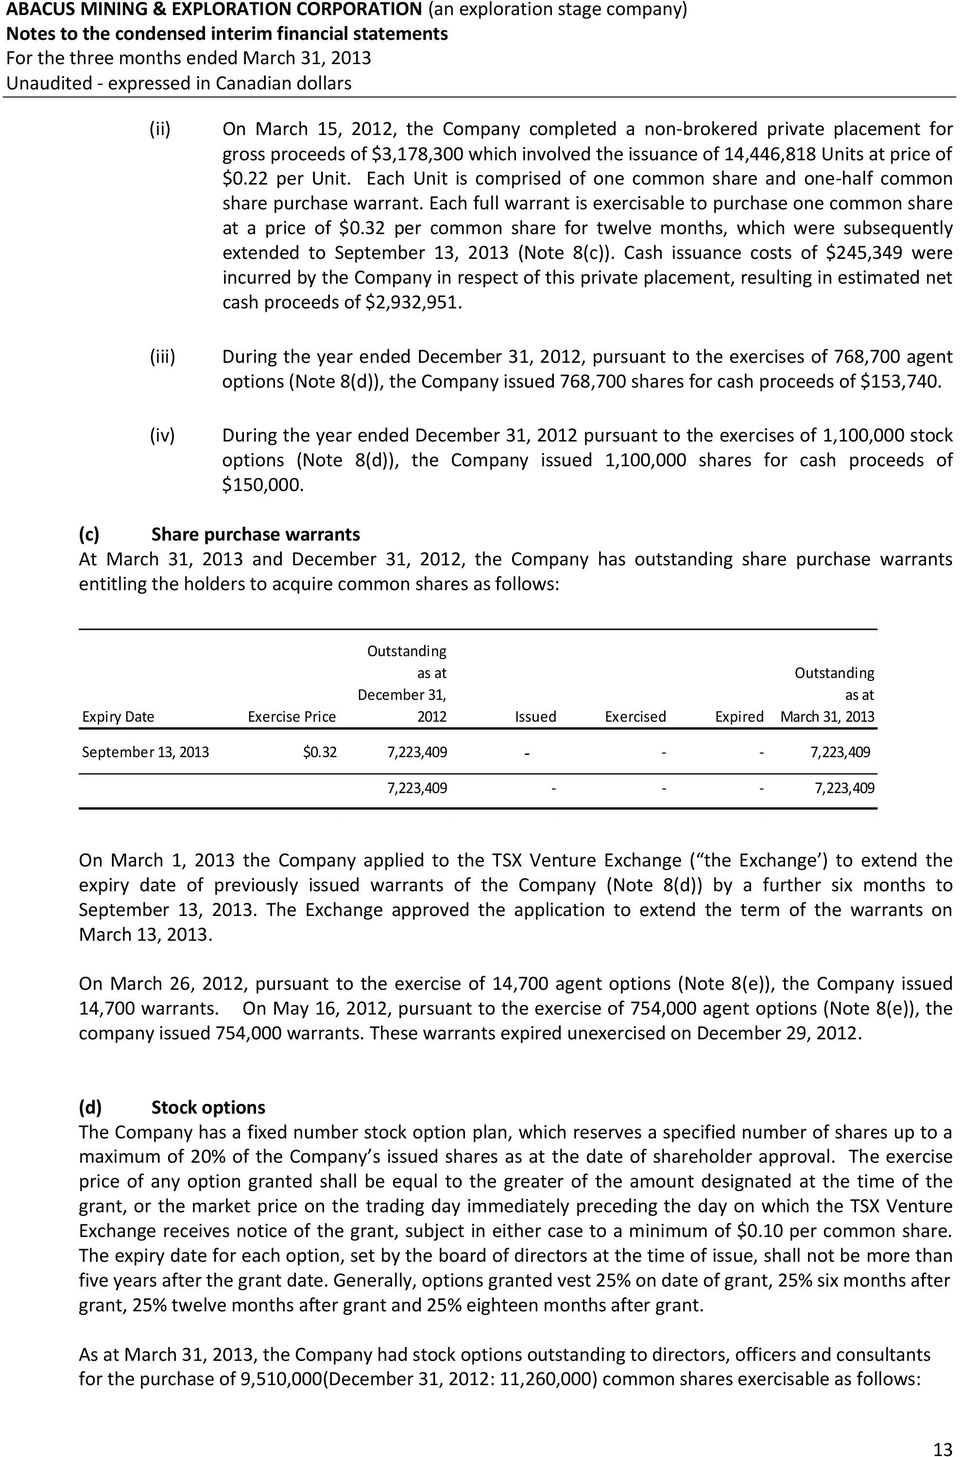 32 per common share for twelve months, which were subsequently ext to September 13, 2013 (Note 8(c)).